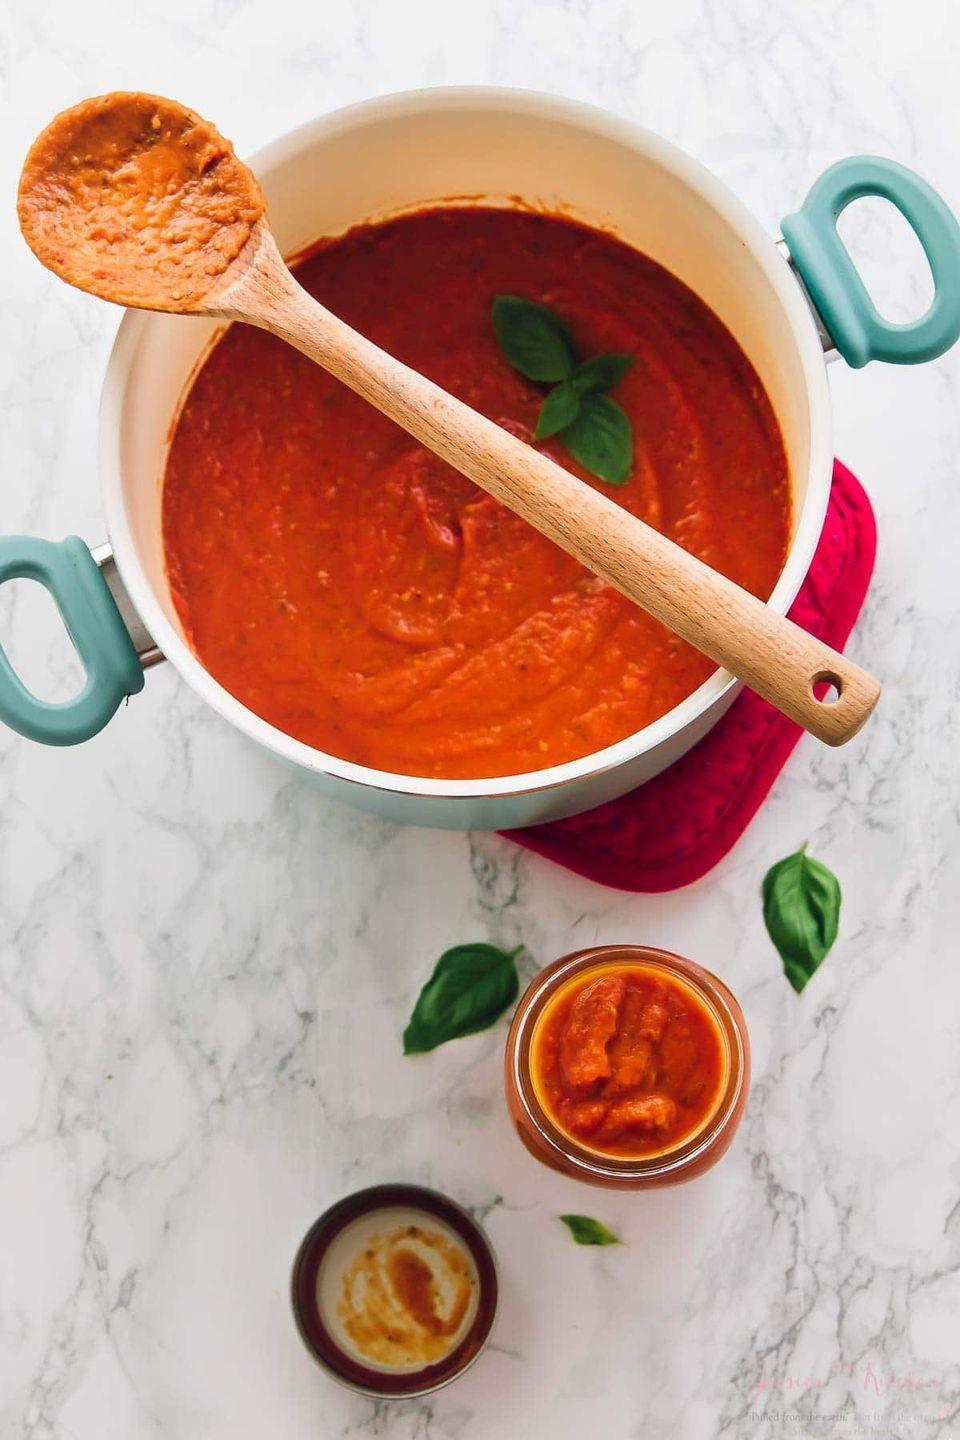 """<p>Homemade sauce is the perfect way to use up a bounty of summer tomatoes. Toss it with fresh pasta or spoon it over meatballs for an easy weeknight dinner. </p><p><strong>Get the recipe at <a href=""""https://jessicainthekitchen.com/homemade-tomato-sauce-roasted-garlic-easy/"""" rel=""""nofollow noopener"""" target=""""_blank"""" data-ylk=""""slk:Jessica in the Kitchen"""" class=""""link rapid-noclick-resp"""">Jessica in the Kitchen</a>.</strong></p><p><a class=""""link rapid-noclick-resp"""" href=""""https://go.redirectingat.com?id=74968X1596630&url=https%3A%2F%2Fwww.walmart.com%2Fsearch%2F%3Fquery%3Dmason%2Bjars&sref=https%3A%2F%2Fwww.thepioneerwoman.com%2Ffood-cooking%2Fmeals-menus%2Fg36500577%2Ftomato-recipes%2F"""" rel=""""nofollow noopener"""" target=""""_blank"""" data-ylk=""""slk:SHOP MASON JARS"""">SHOP MASON JARS</a></p>"""